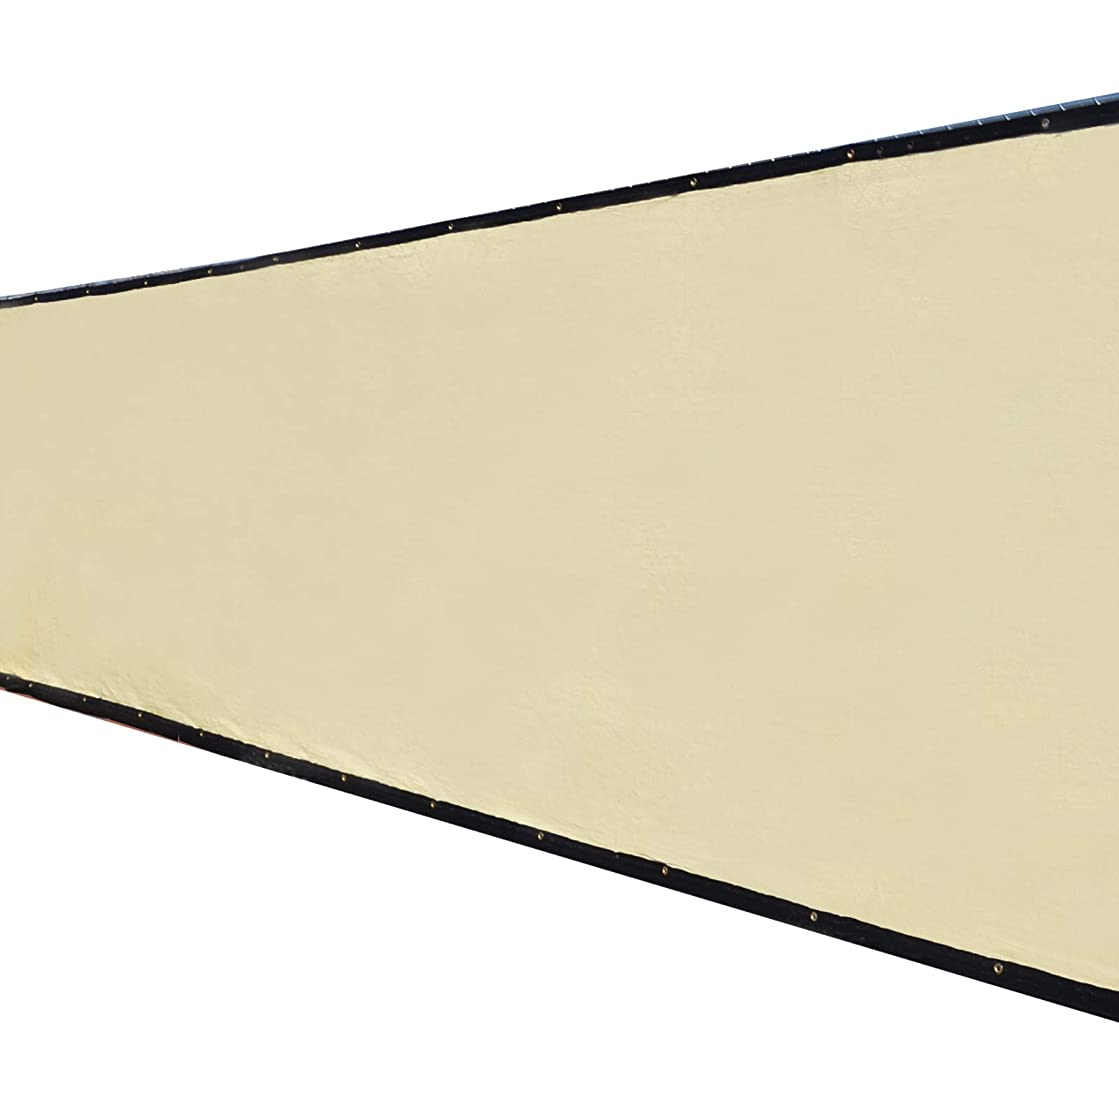 6'x50' 3rd Gen Tan Fence Privacy Screen Windscreen Shade Cover Mesh Fabric (Aluminum Grommets) Home, Court, or Construction